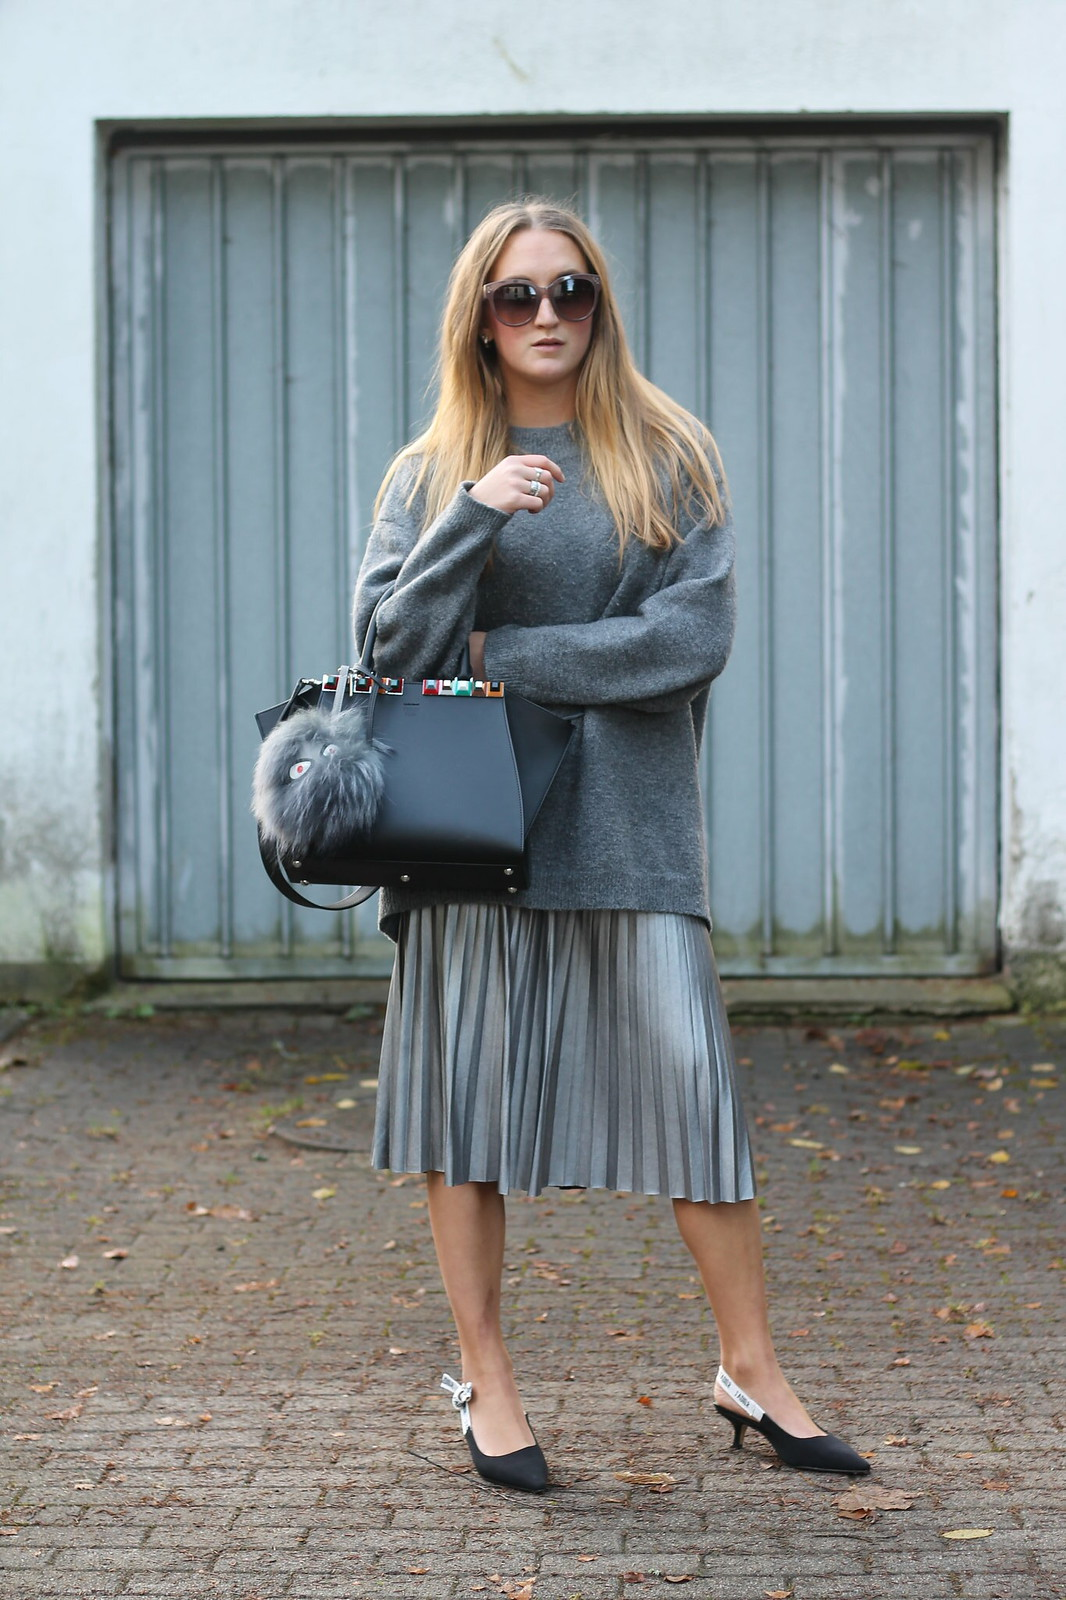 silver-skirt-and-sweater-whole-look-front-wiebkembg